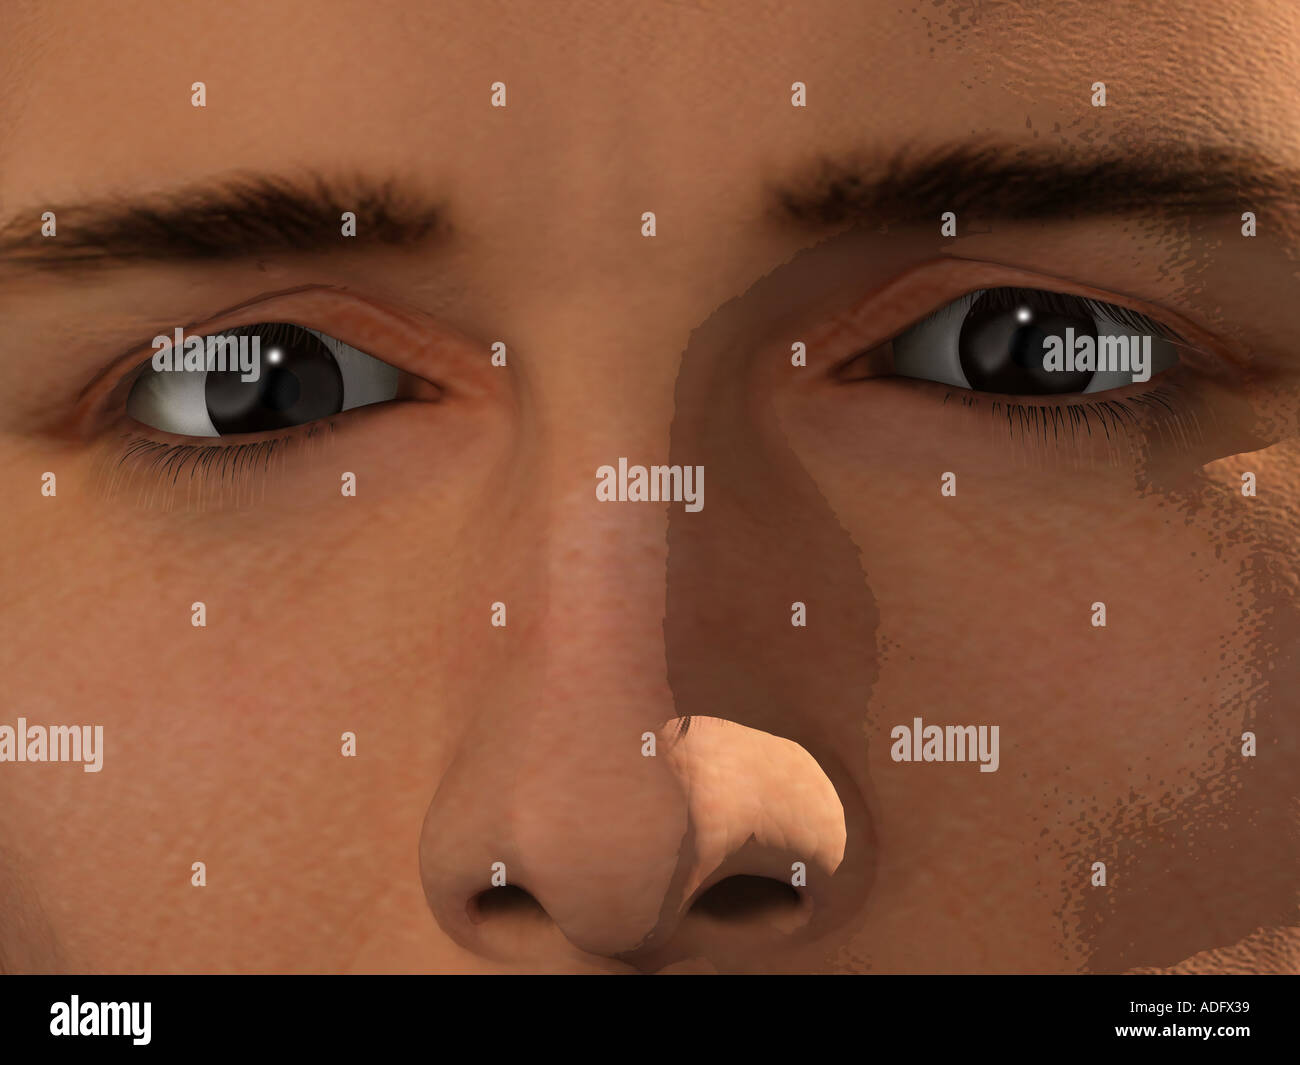 extreme close up ecu of man s face 3d illustration - Stock Image